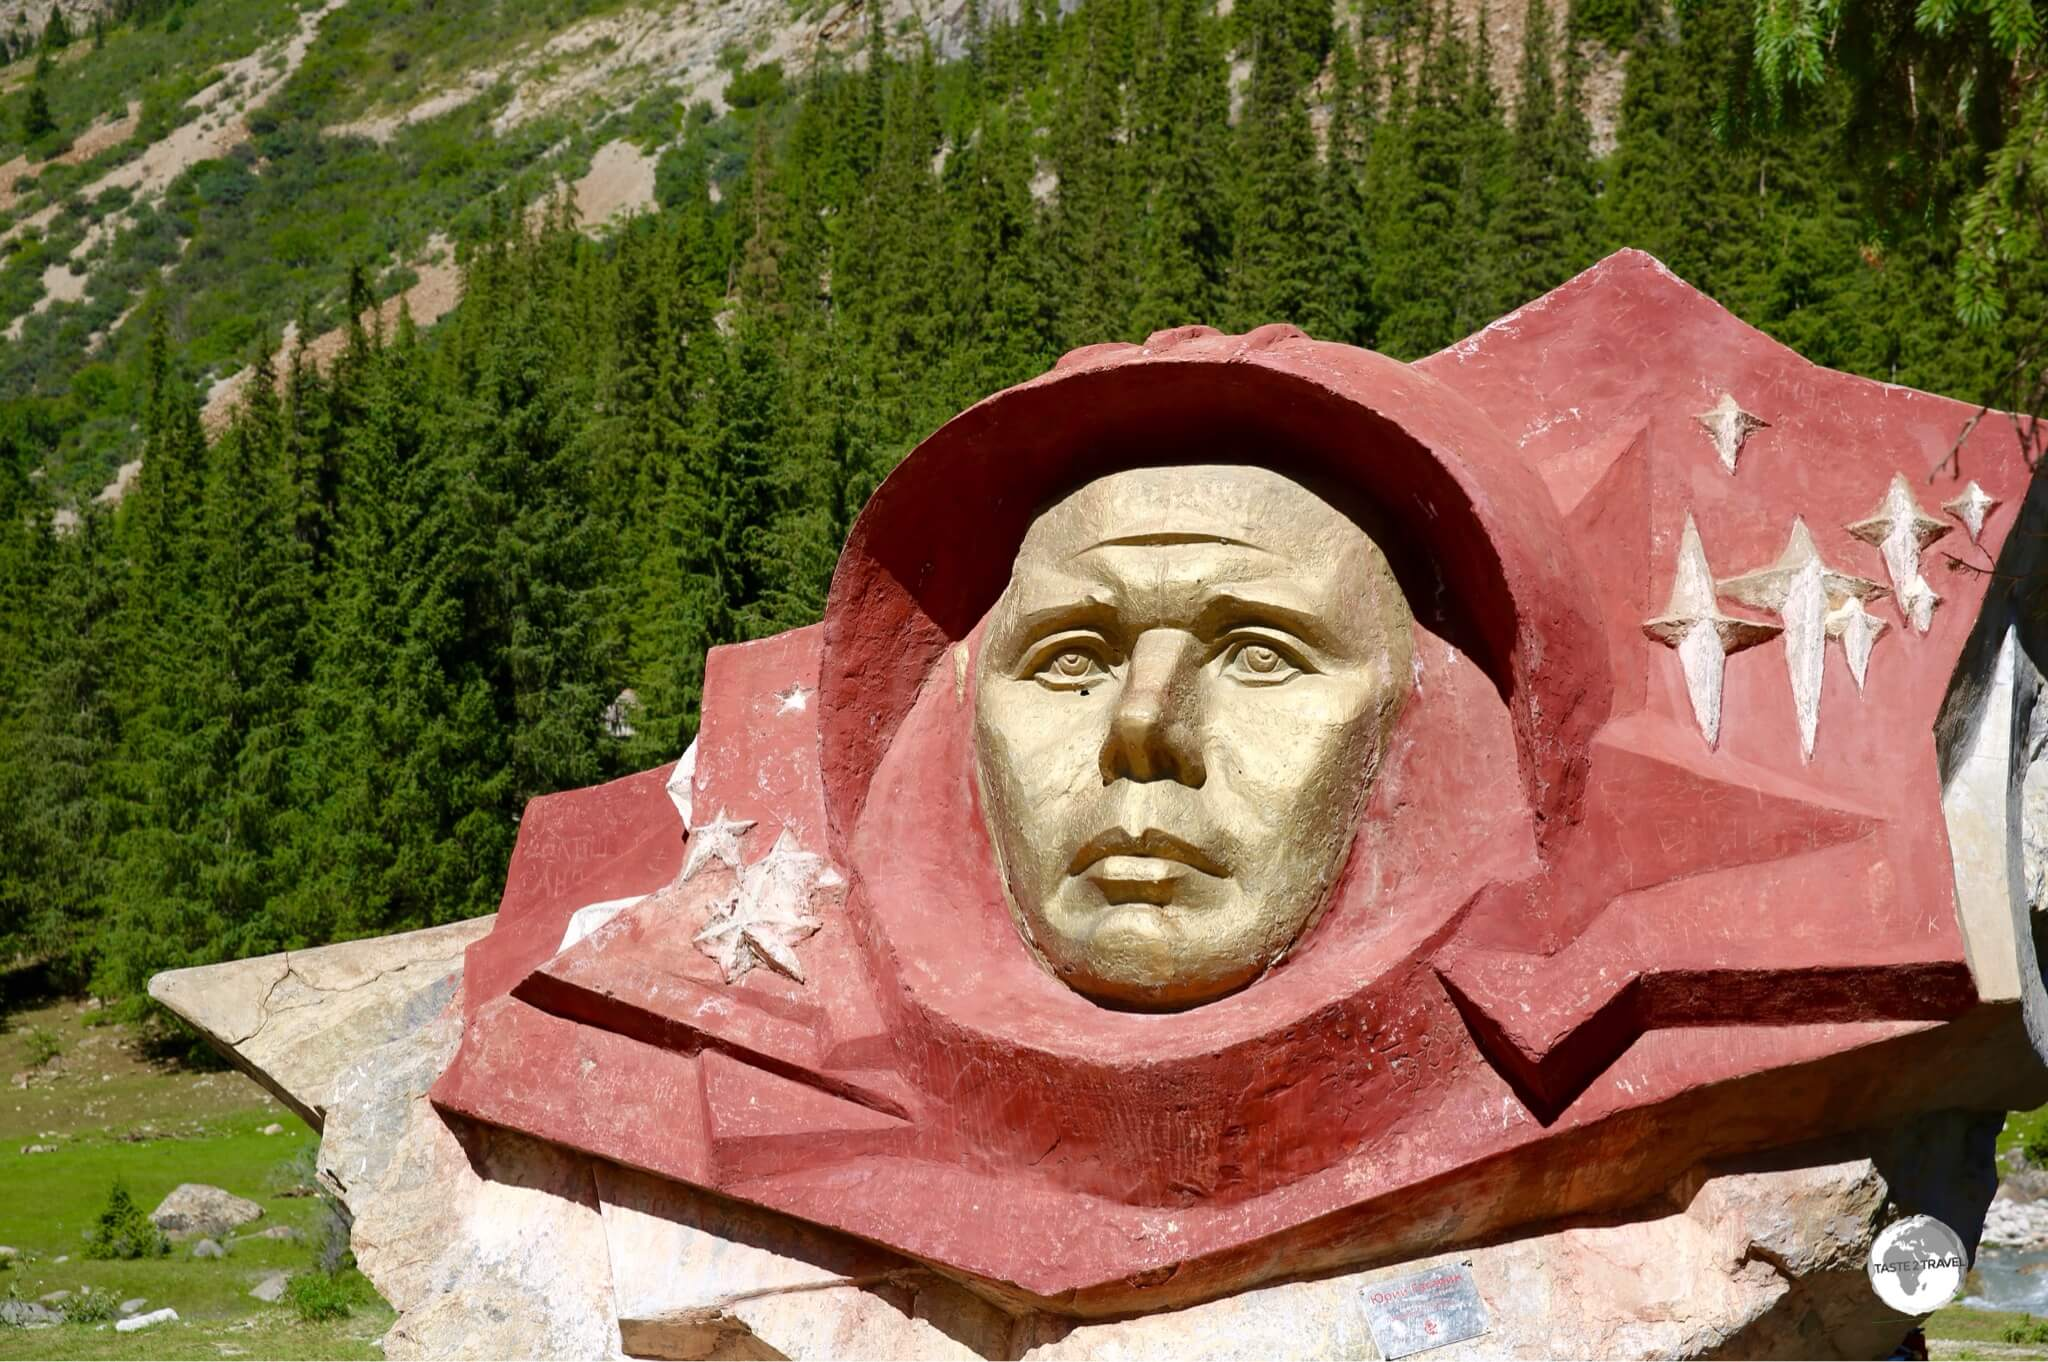 The face of cosmonaut Yuri Gagarin is carved into a boulder in the Barskoon valley.